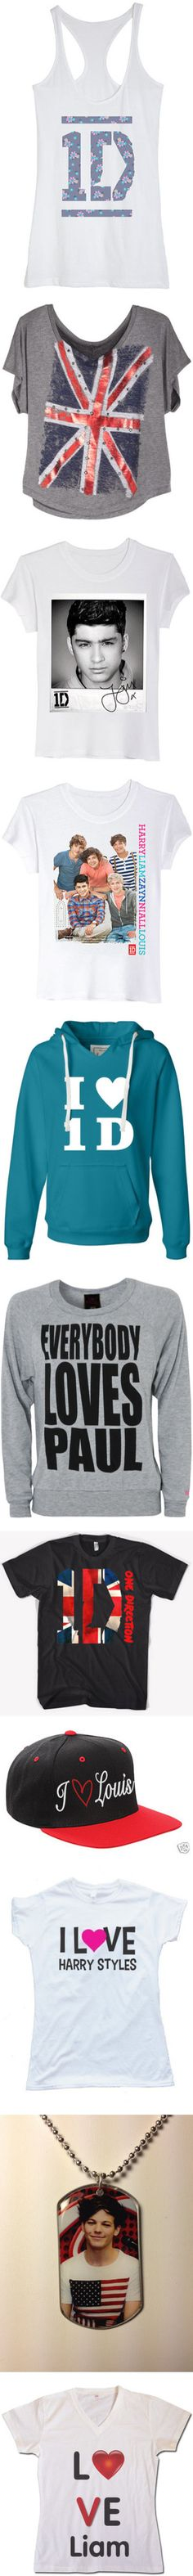 Ohmygosh I need the Everybody Loves Paul shirt and the I Love Louis cap!!!!!! NEEDNEEDNEEDNEED